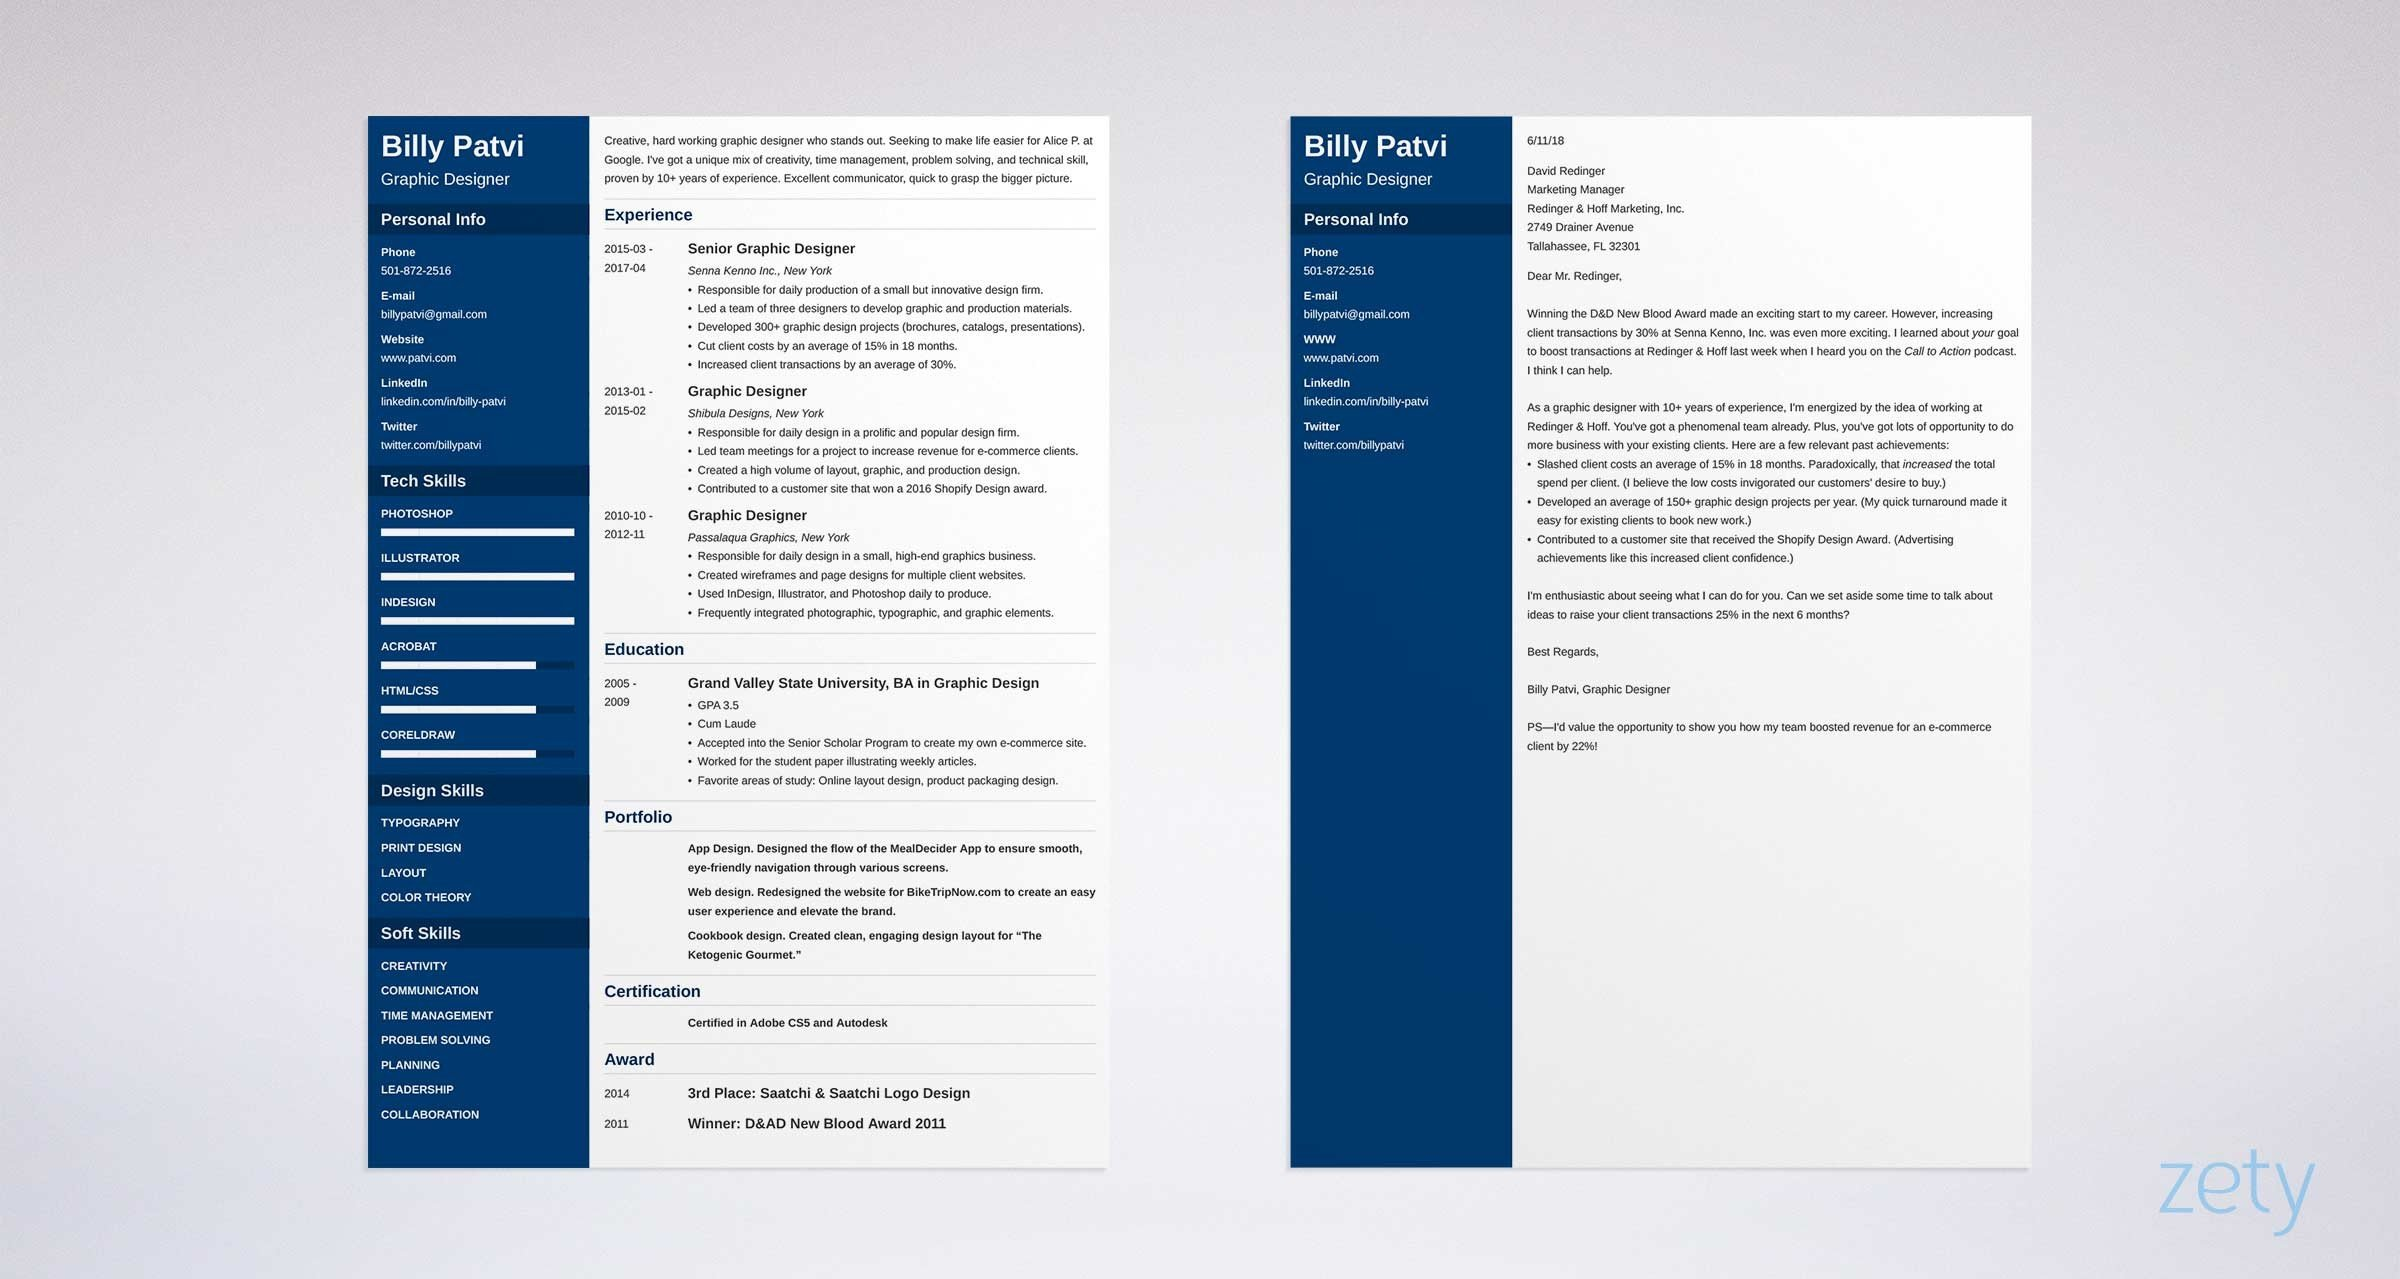 Graphic Design Cover Letter: Sample & Complete Guide [15+